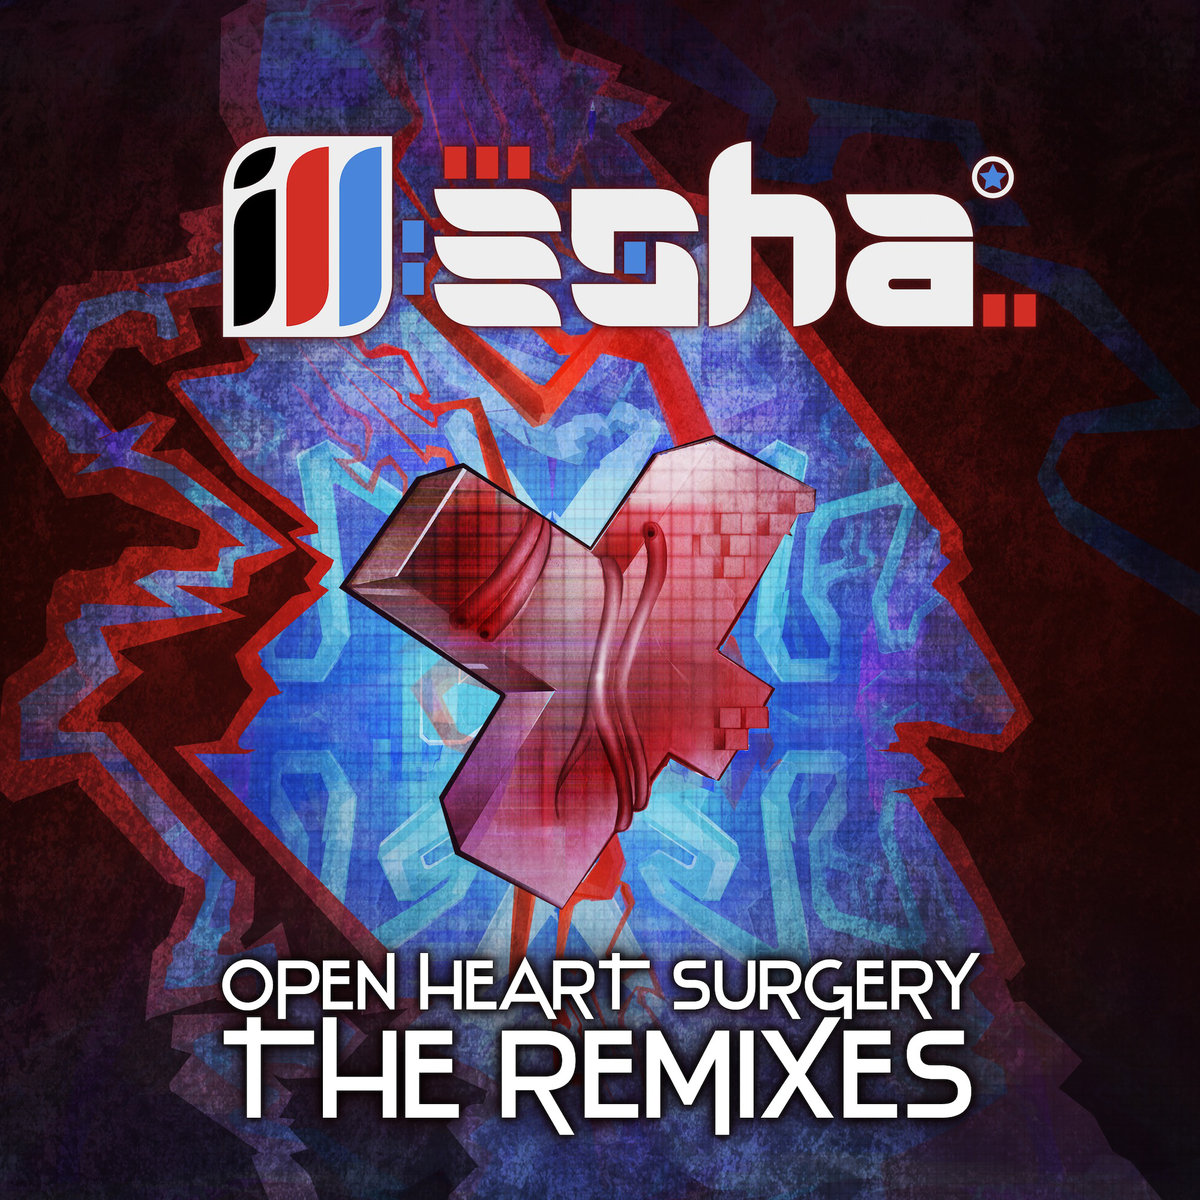 ill-esha - The Letter (The OriGinALz Remix) @ 'Open Heart Surgery: The Remixes' album (Austin)